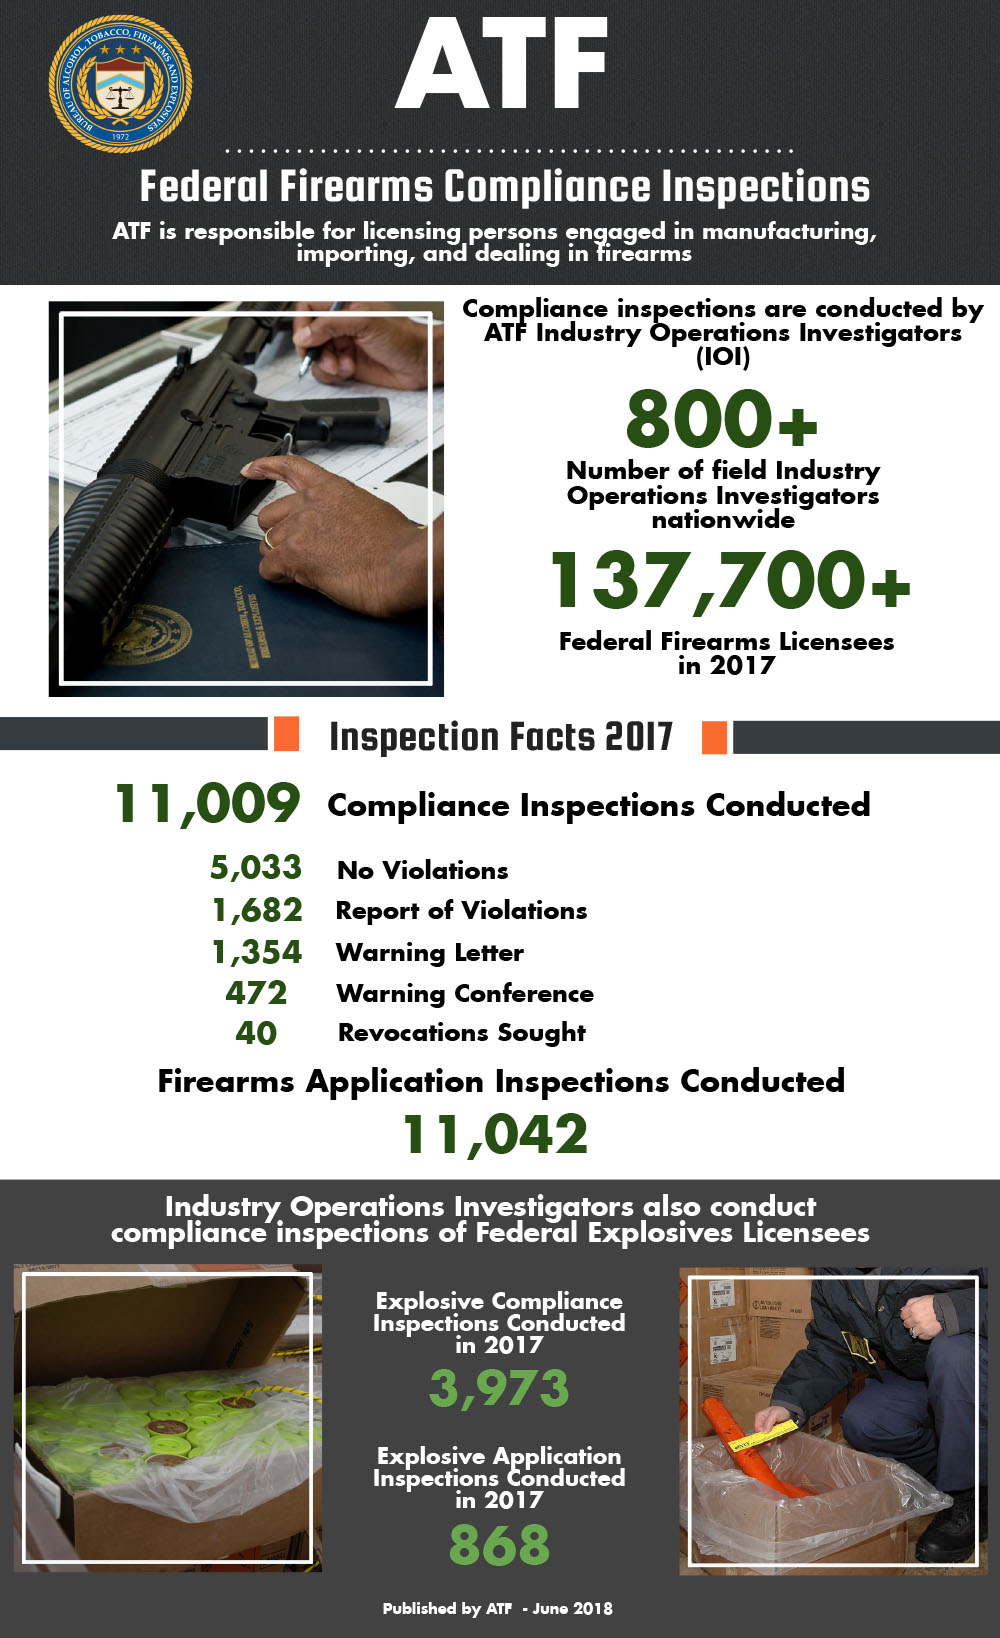 Fiscal Year 2015 FFL Inspections